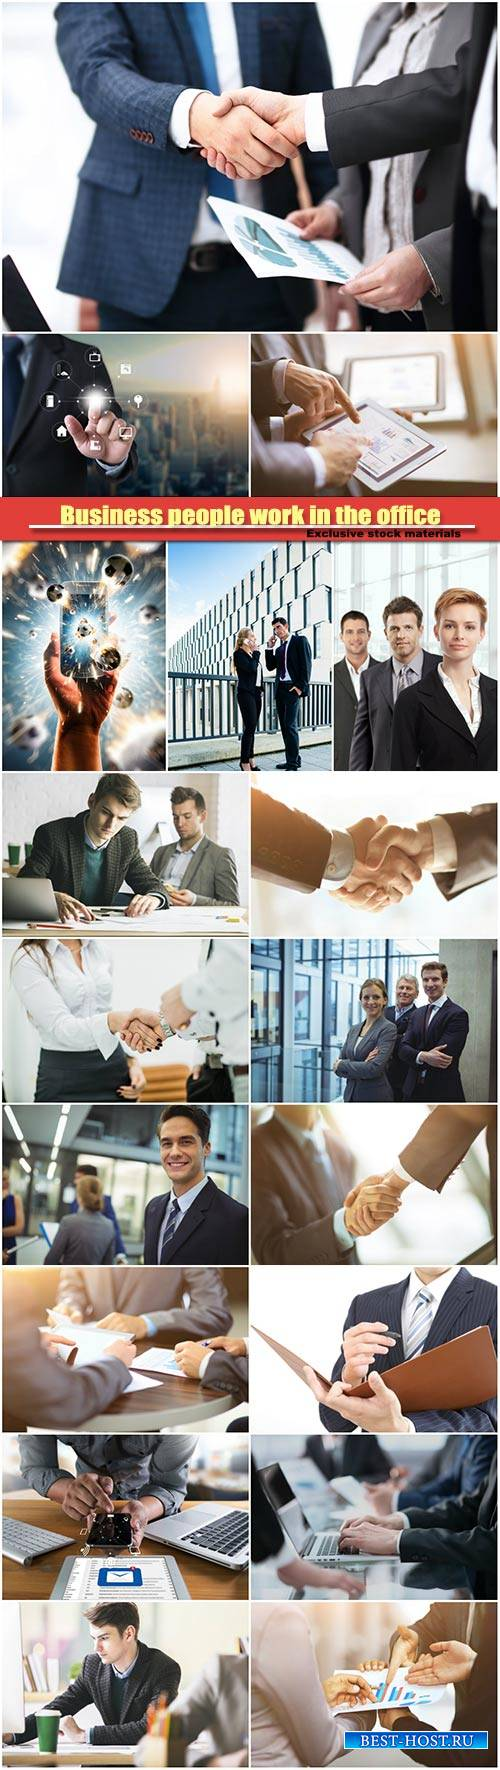 Business people work in the office